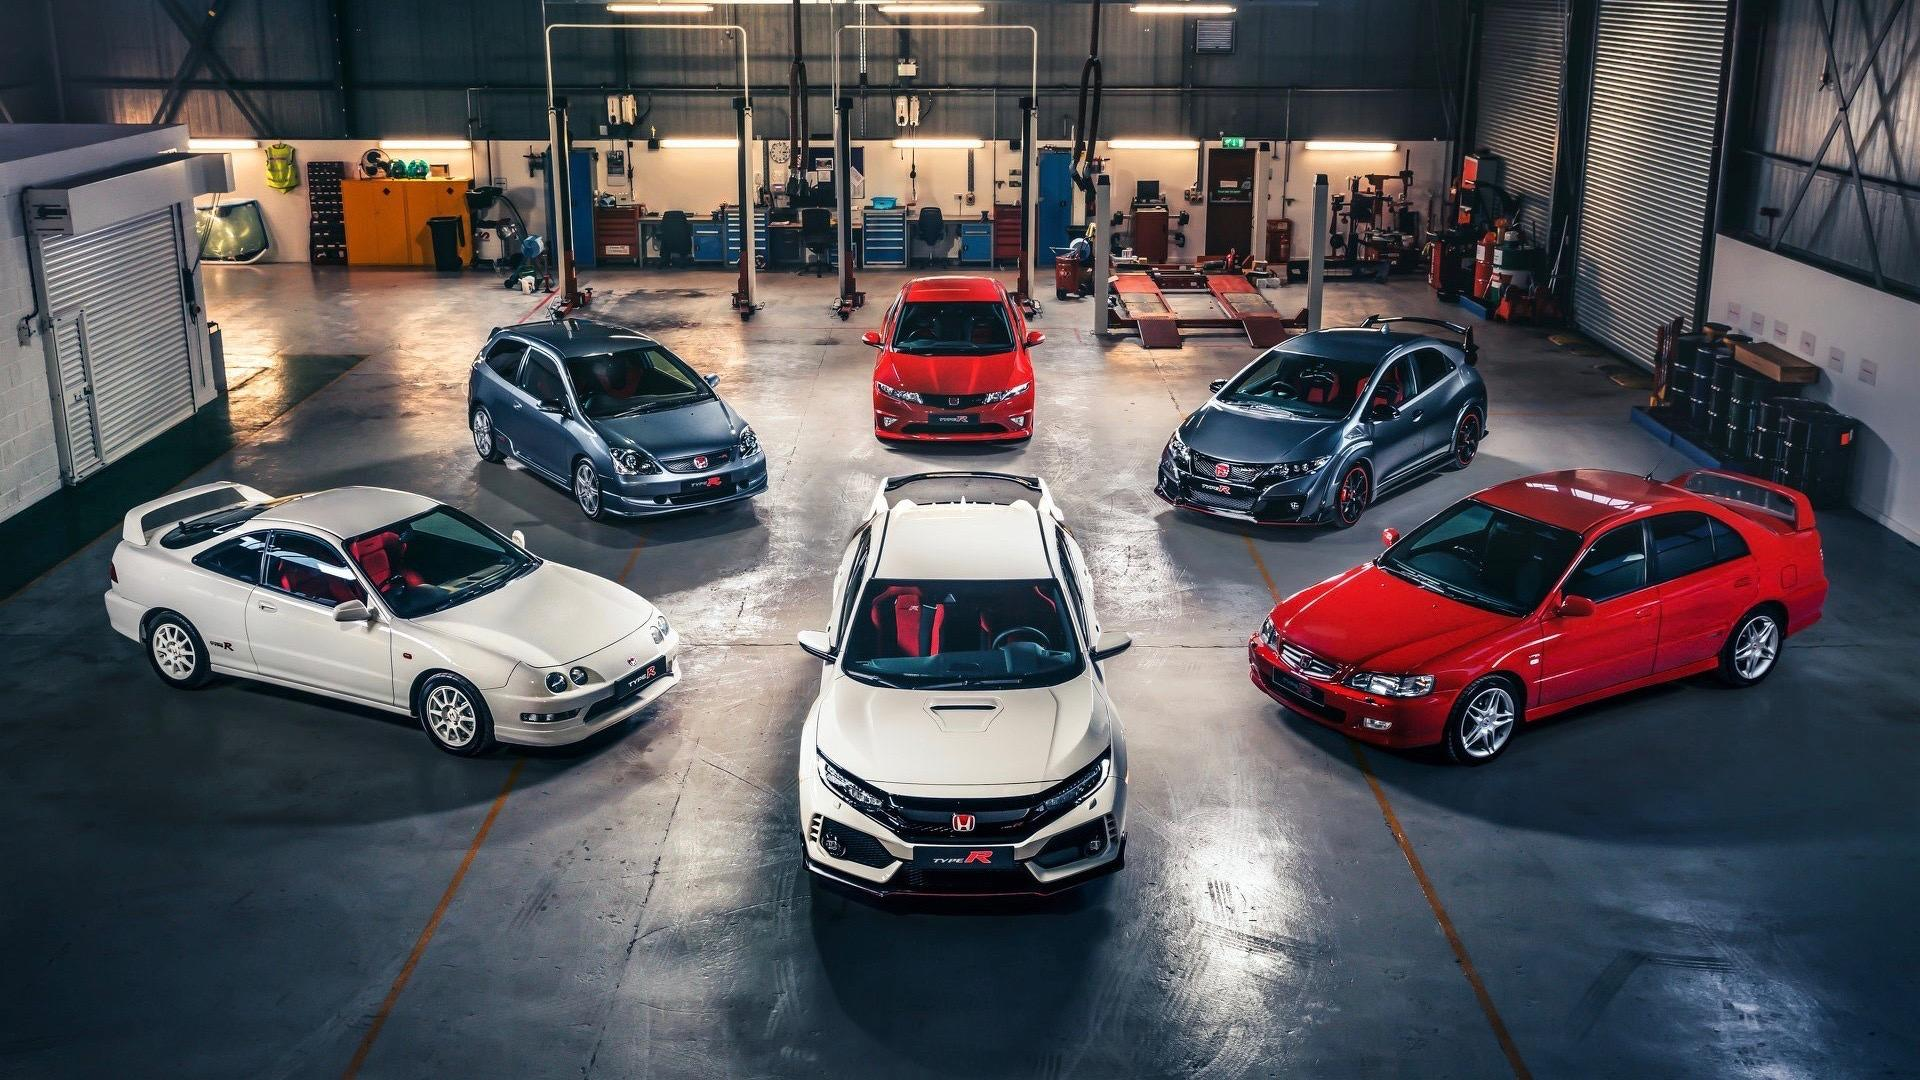 UK Type R Generations